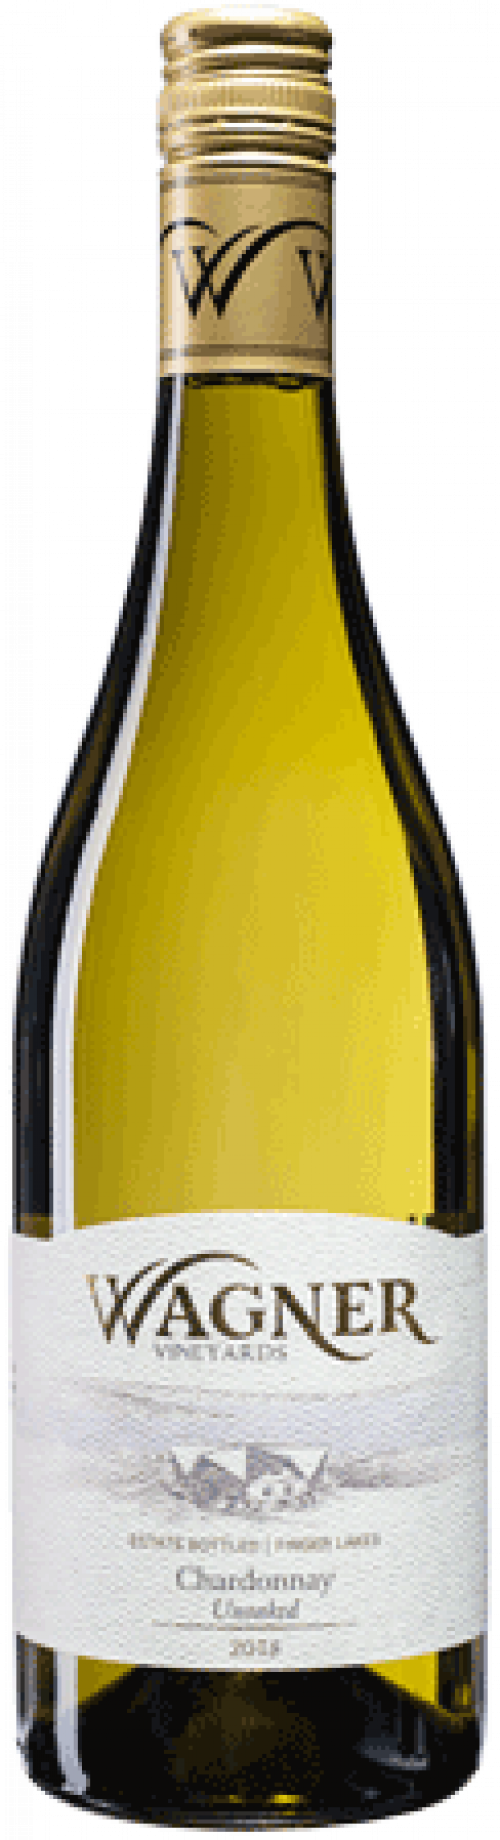 2019 Wagner Unoaked Chardonnay 750ml